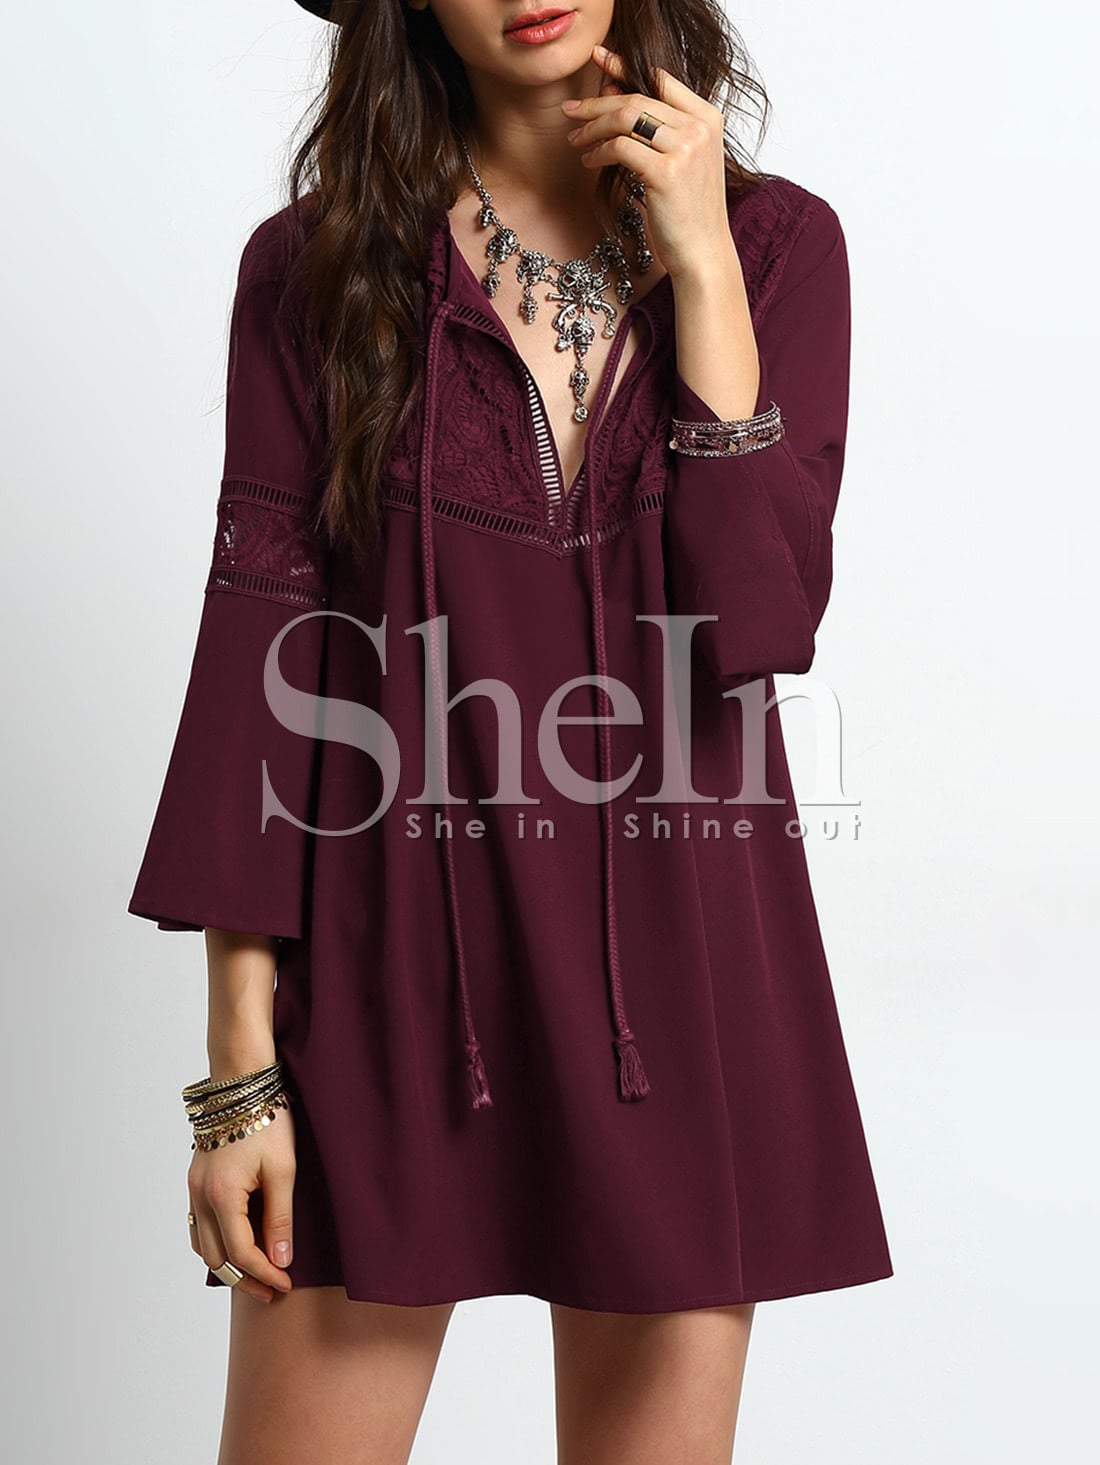 Bell Sleeve Tie Neck Lace Splicing Swing Dress contrast fishnet shoulder bell sleeve swing dress